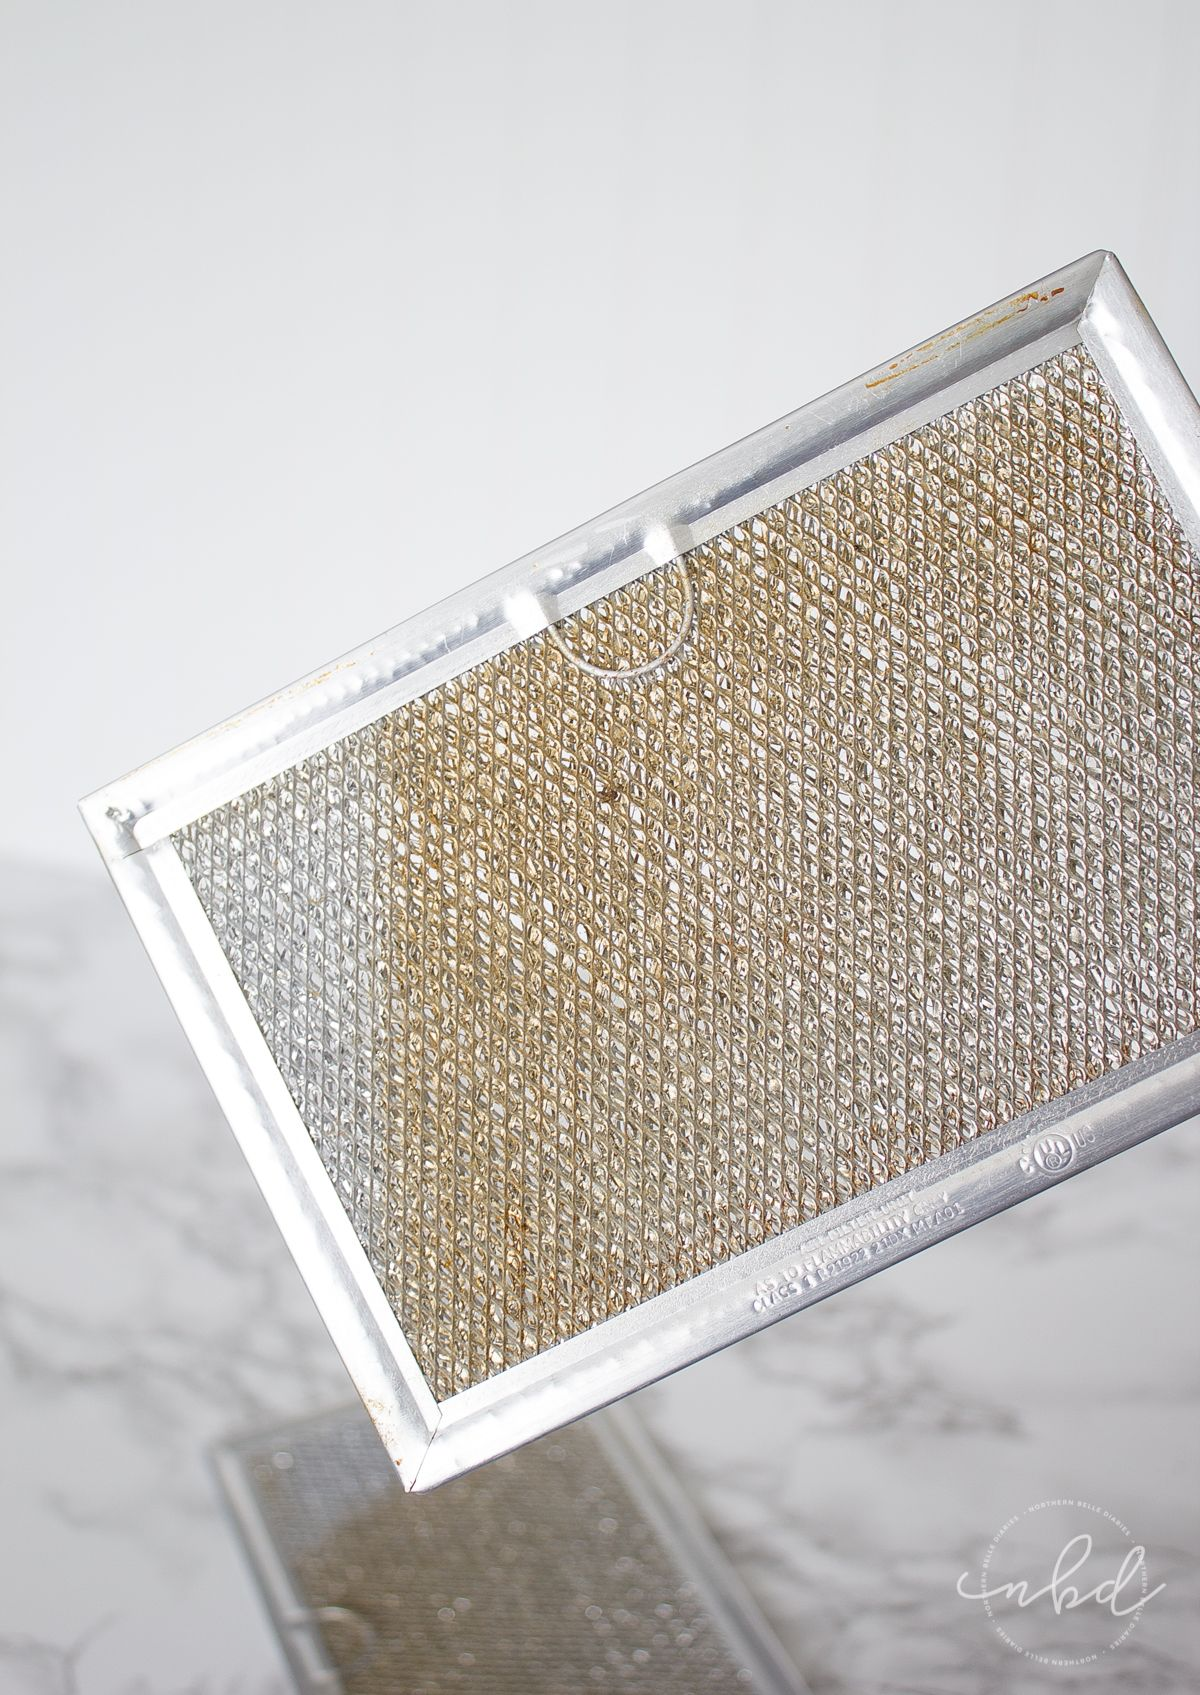 How To Clean A Greasy Range Hood Filter Without Scrubbing Cleaning Hacks Range Hood Filters House Cleaning Tips